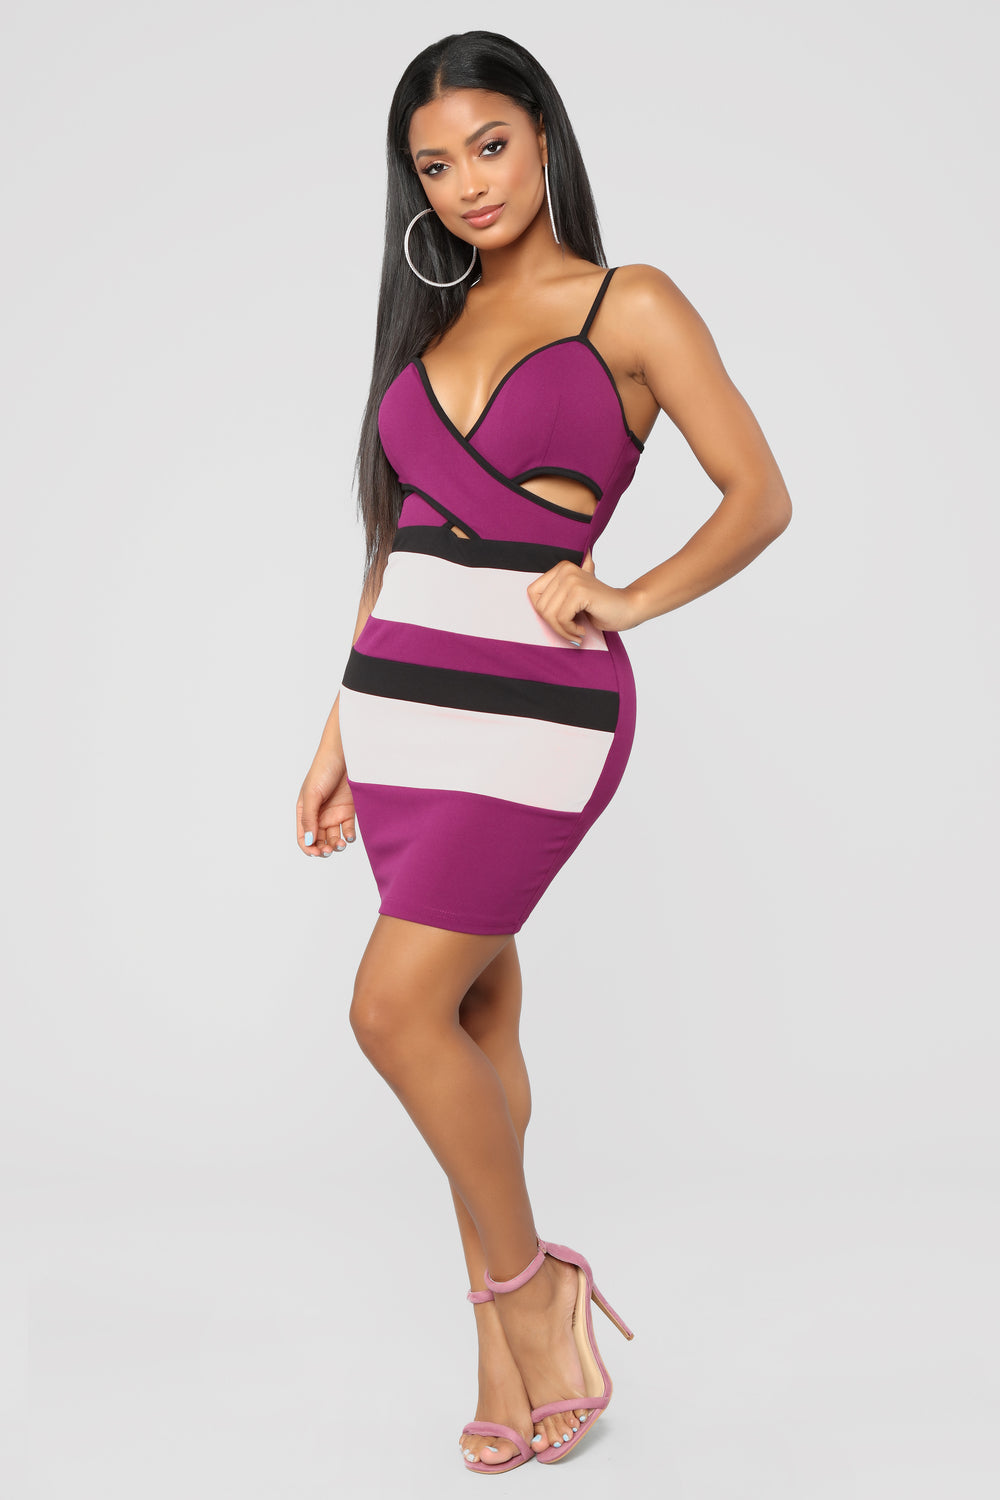 What's Her Name Surplice Dress - Deep Plum